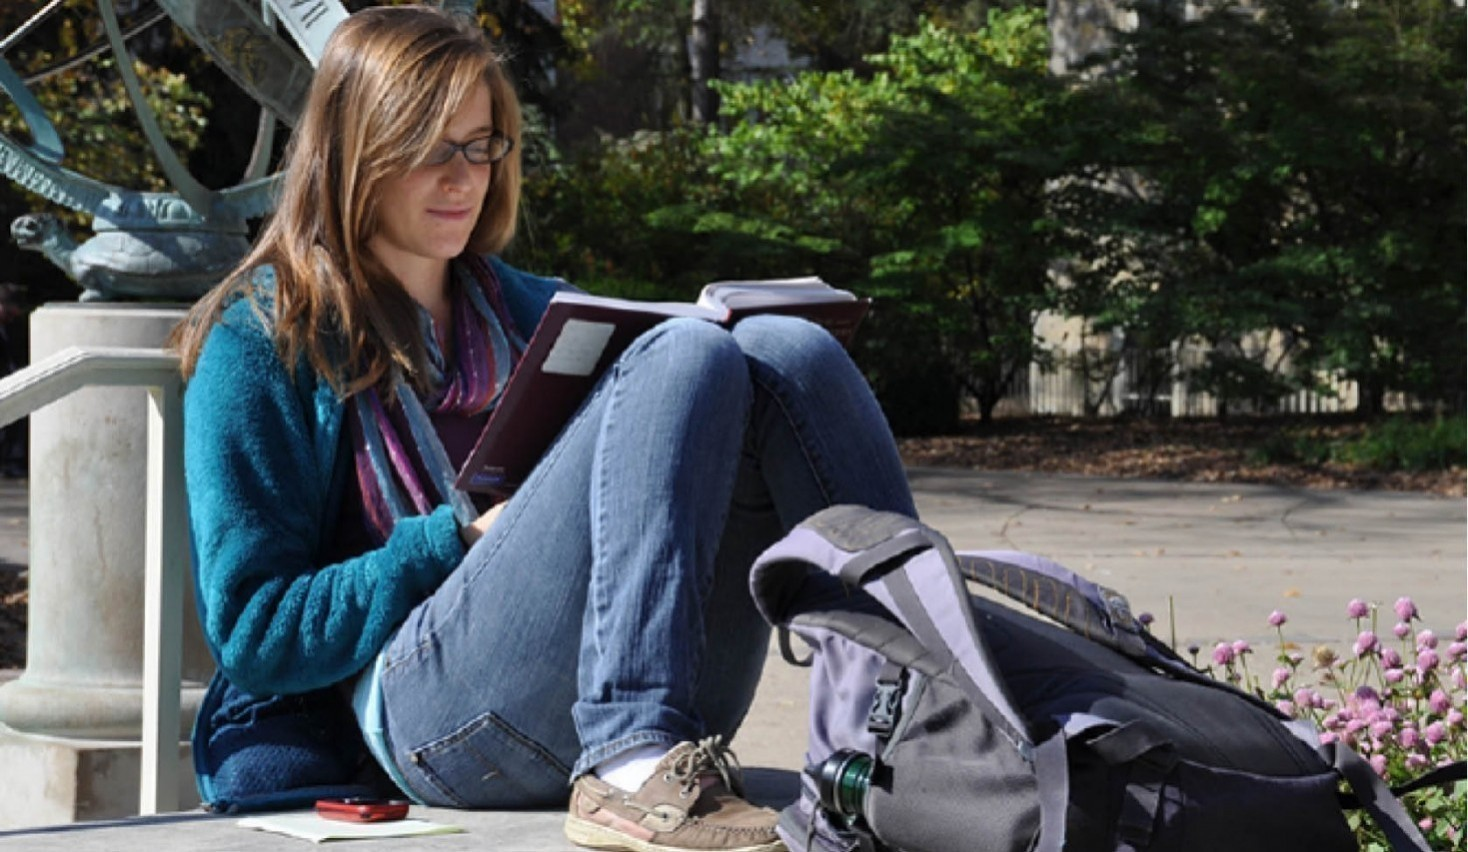 Penn State student studying during summer session